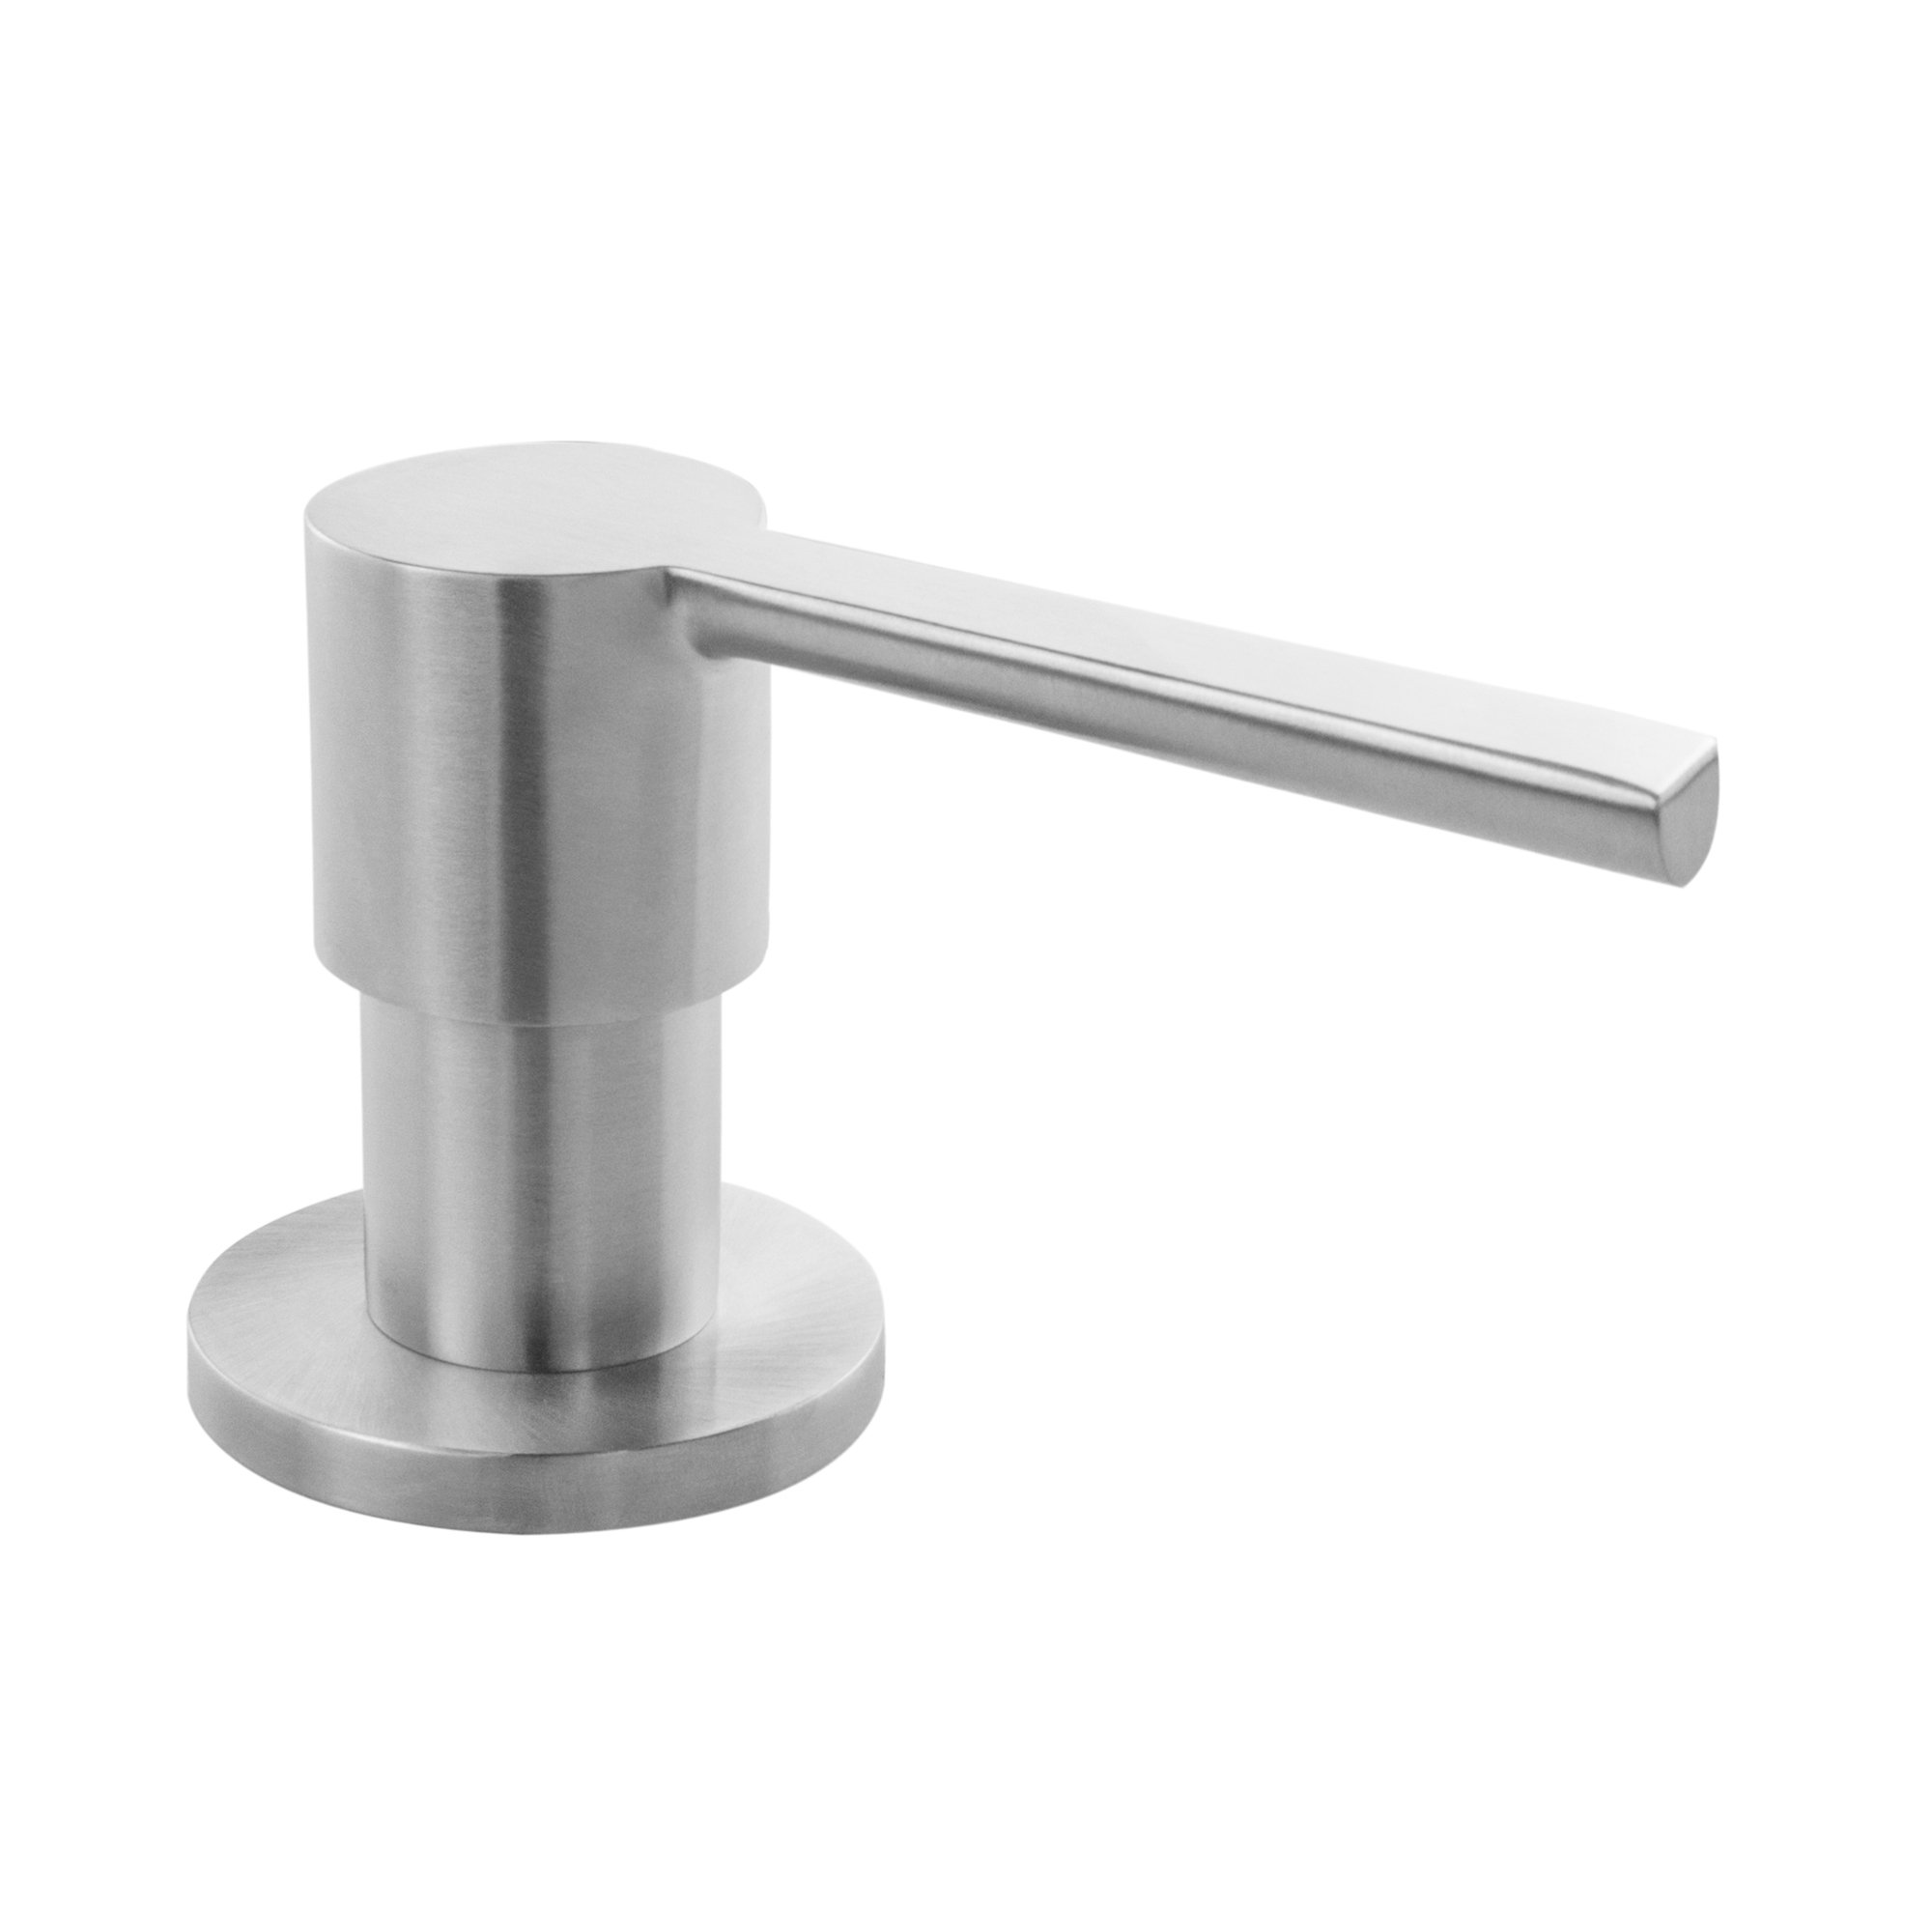 Geyser GF65-S Stainless Steel Soap / Lotion Dispenser with 10 oz. Capacity Bottle by Geyser